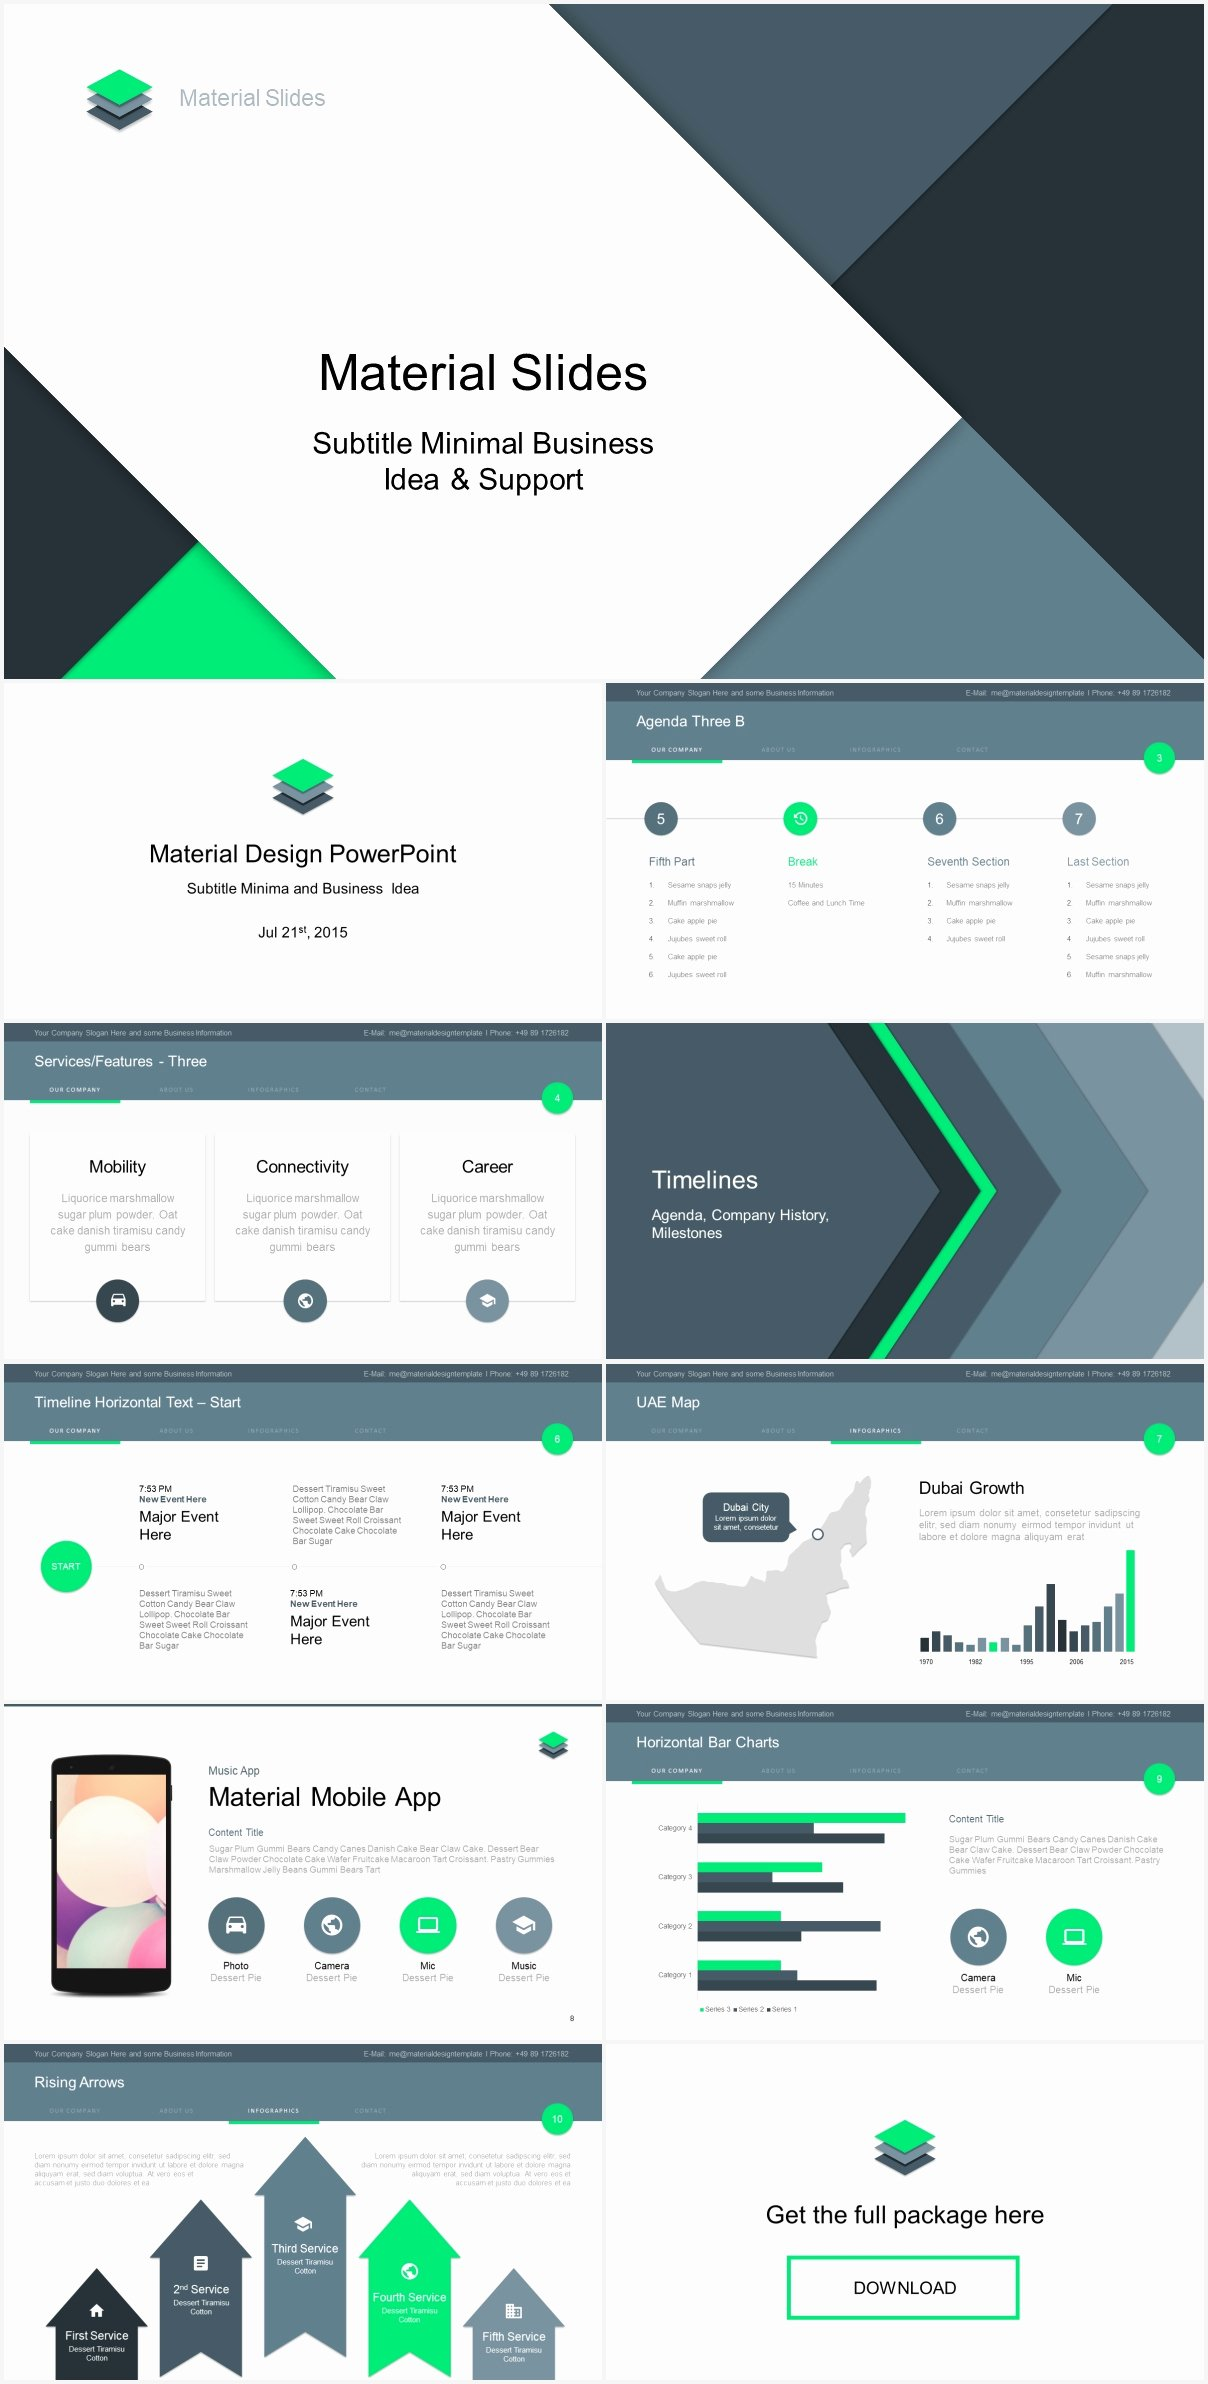 Material Design Powerpoint Template Just Free Slides